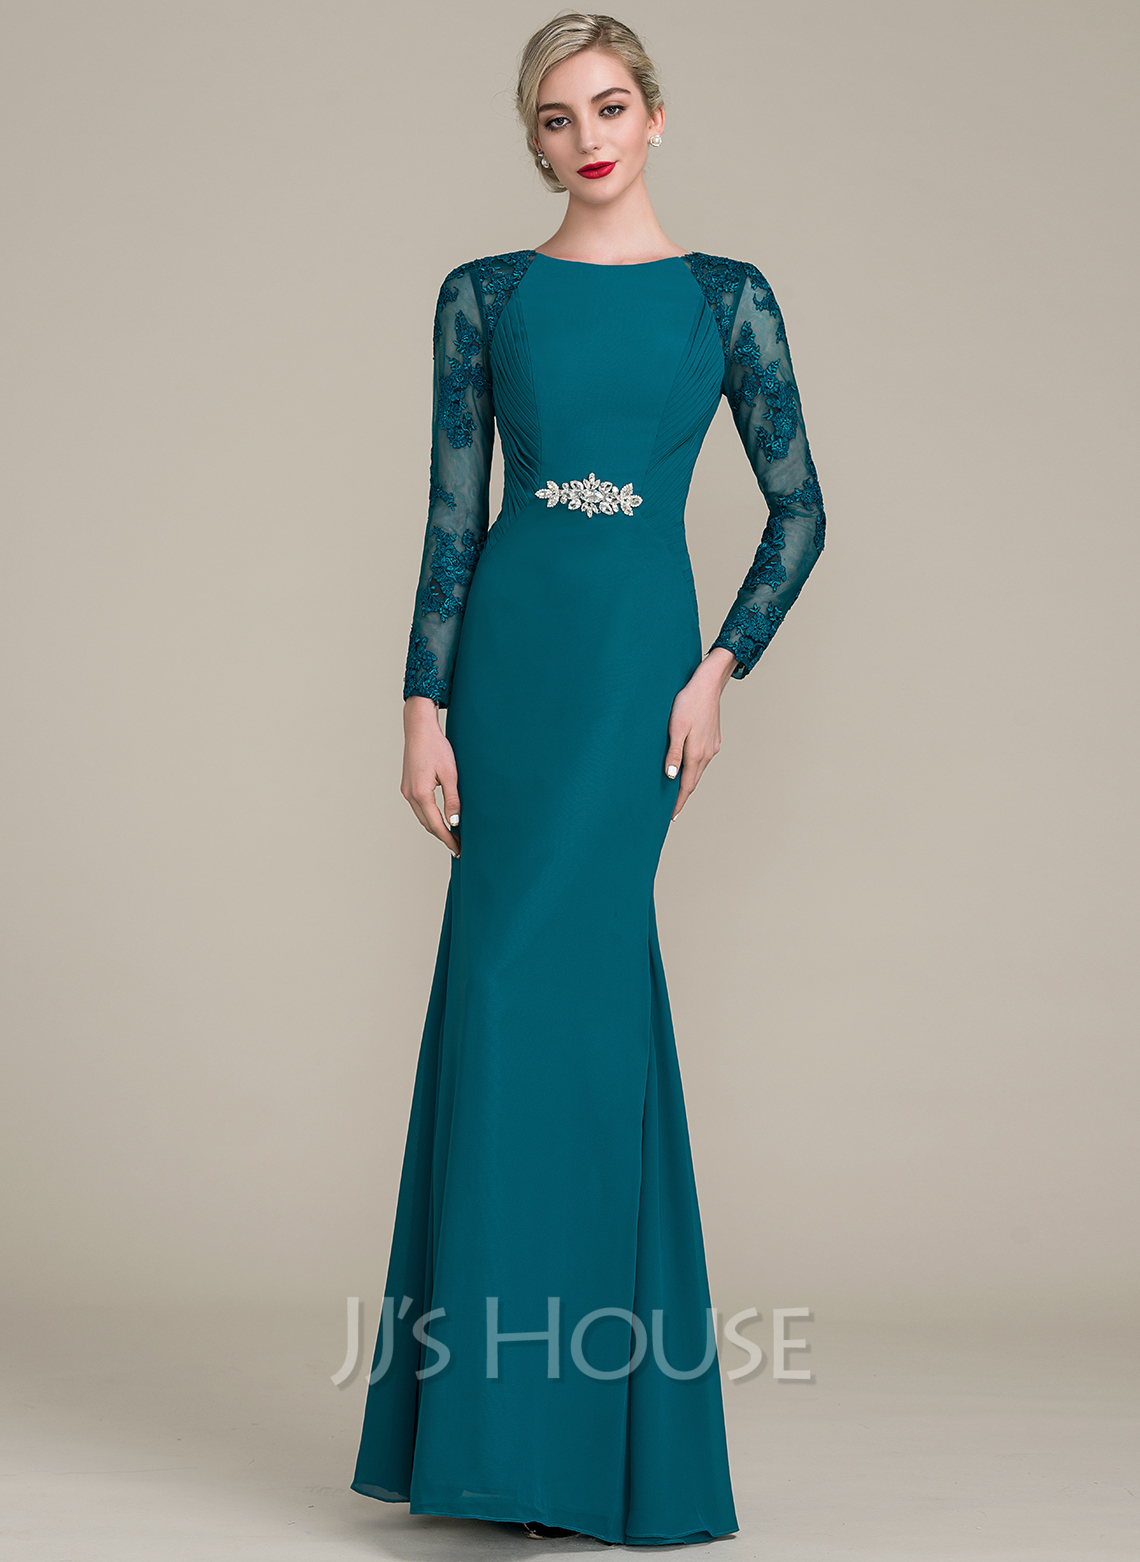 b48edab72 Trumpet/Mermaid Scoop Neck Floor-Length Chiffon Lace Mother of the Bride  Dress With. Loading zoom